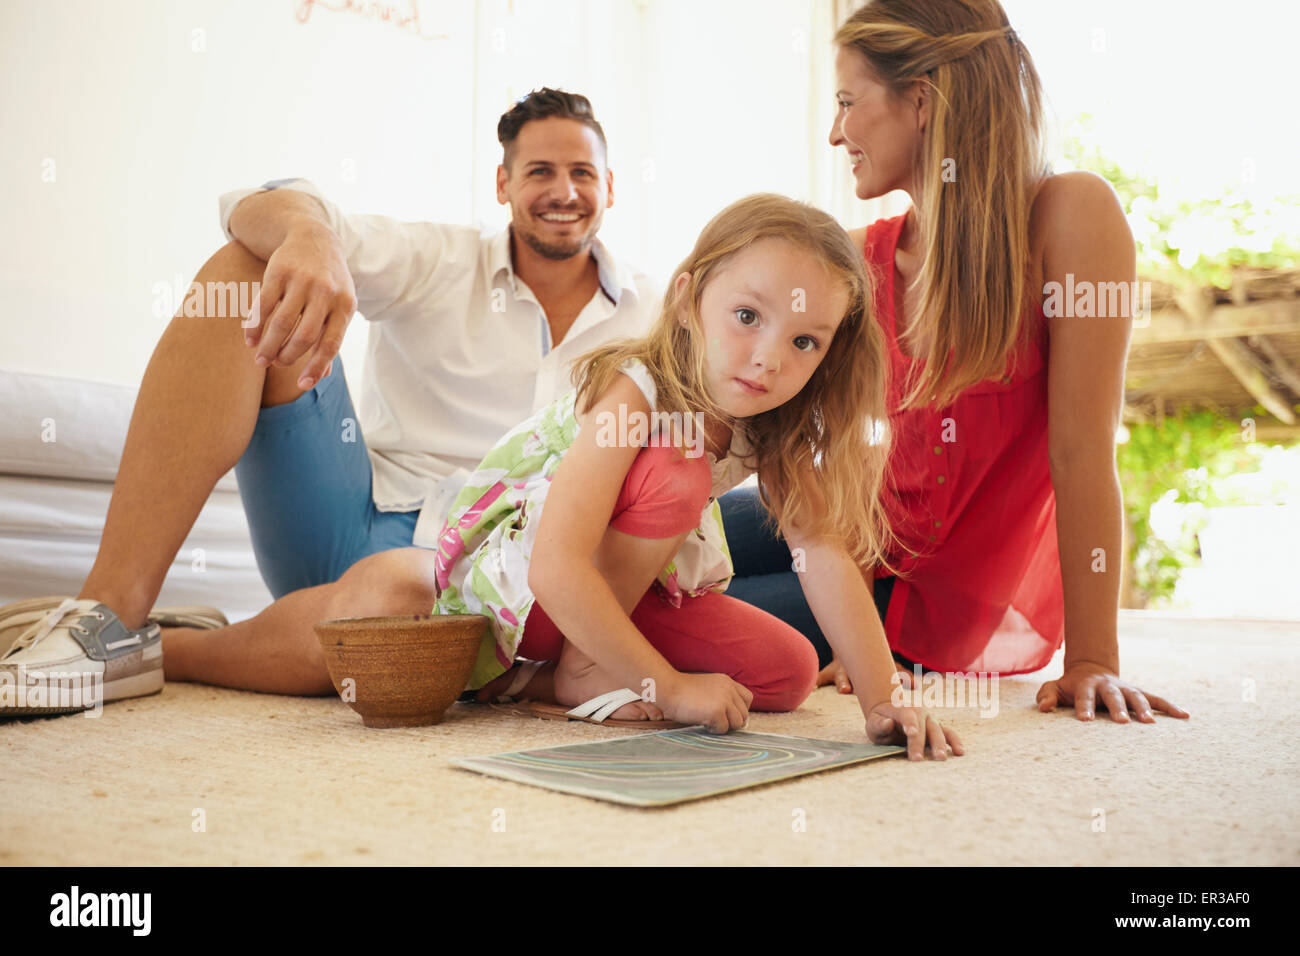 Indoor shot of cute little girl painting with her parents sitting behind her. Family sitting on floor in living - Stock Image